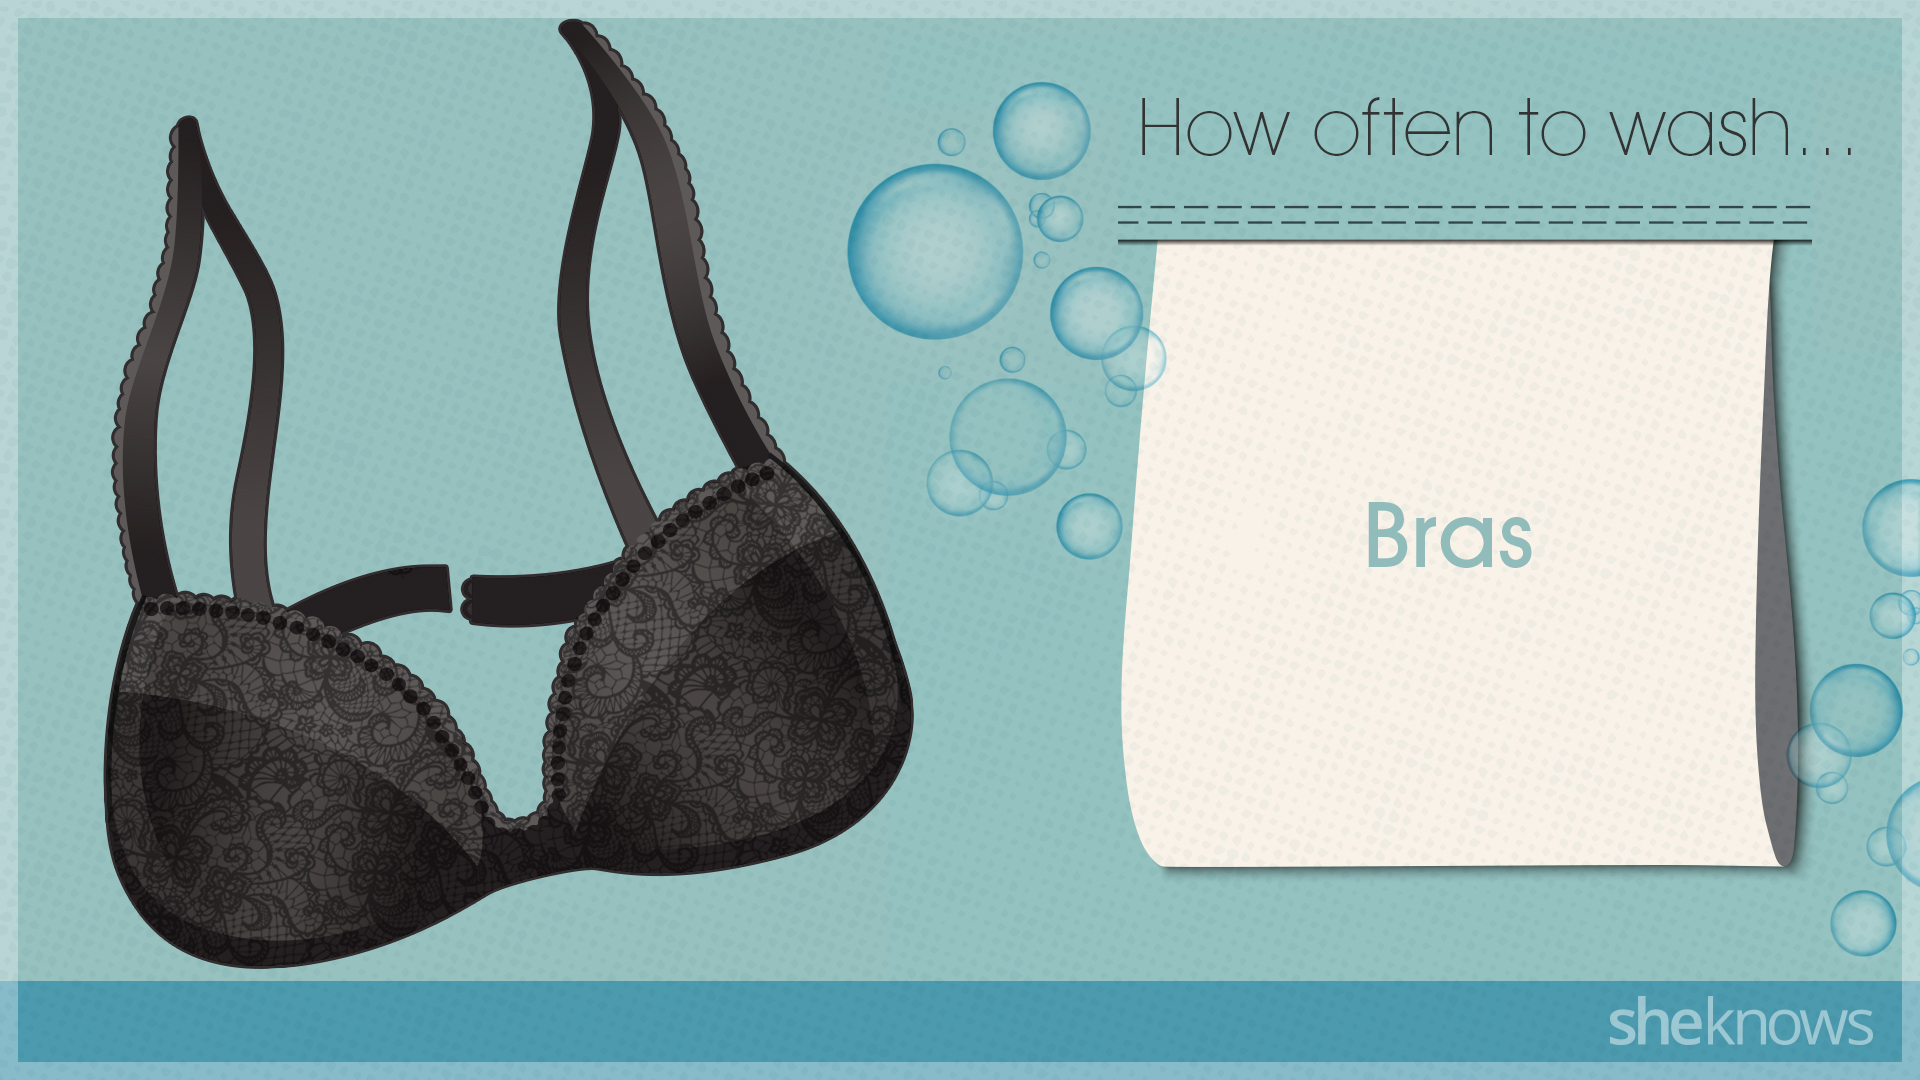 You're probably washing your clothes too much: Bras